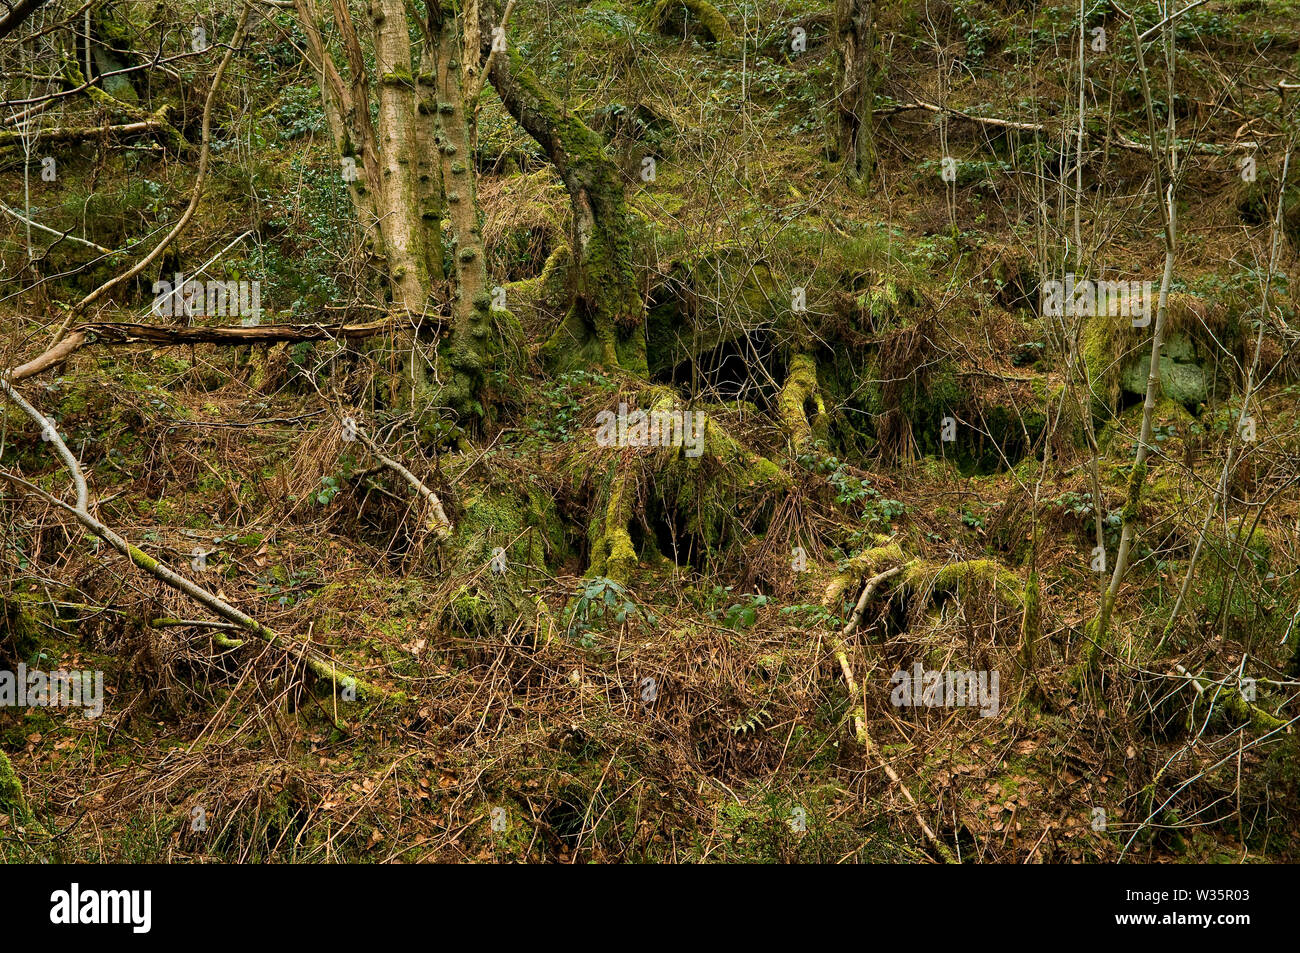 Tangled undergrowth and dead trees on the west flank of Wyming Brook Gorge on the outskirts of Sheffield, South Yorkshire. Stock Photo